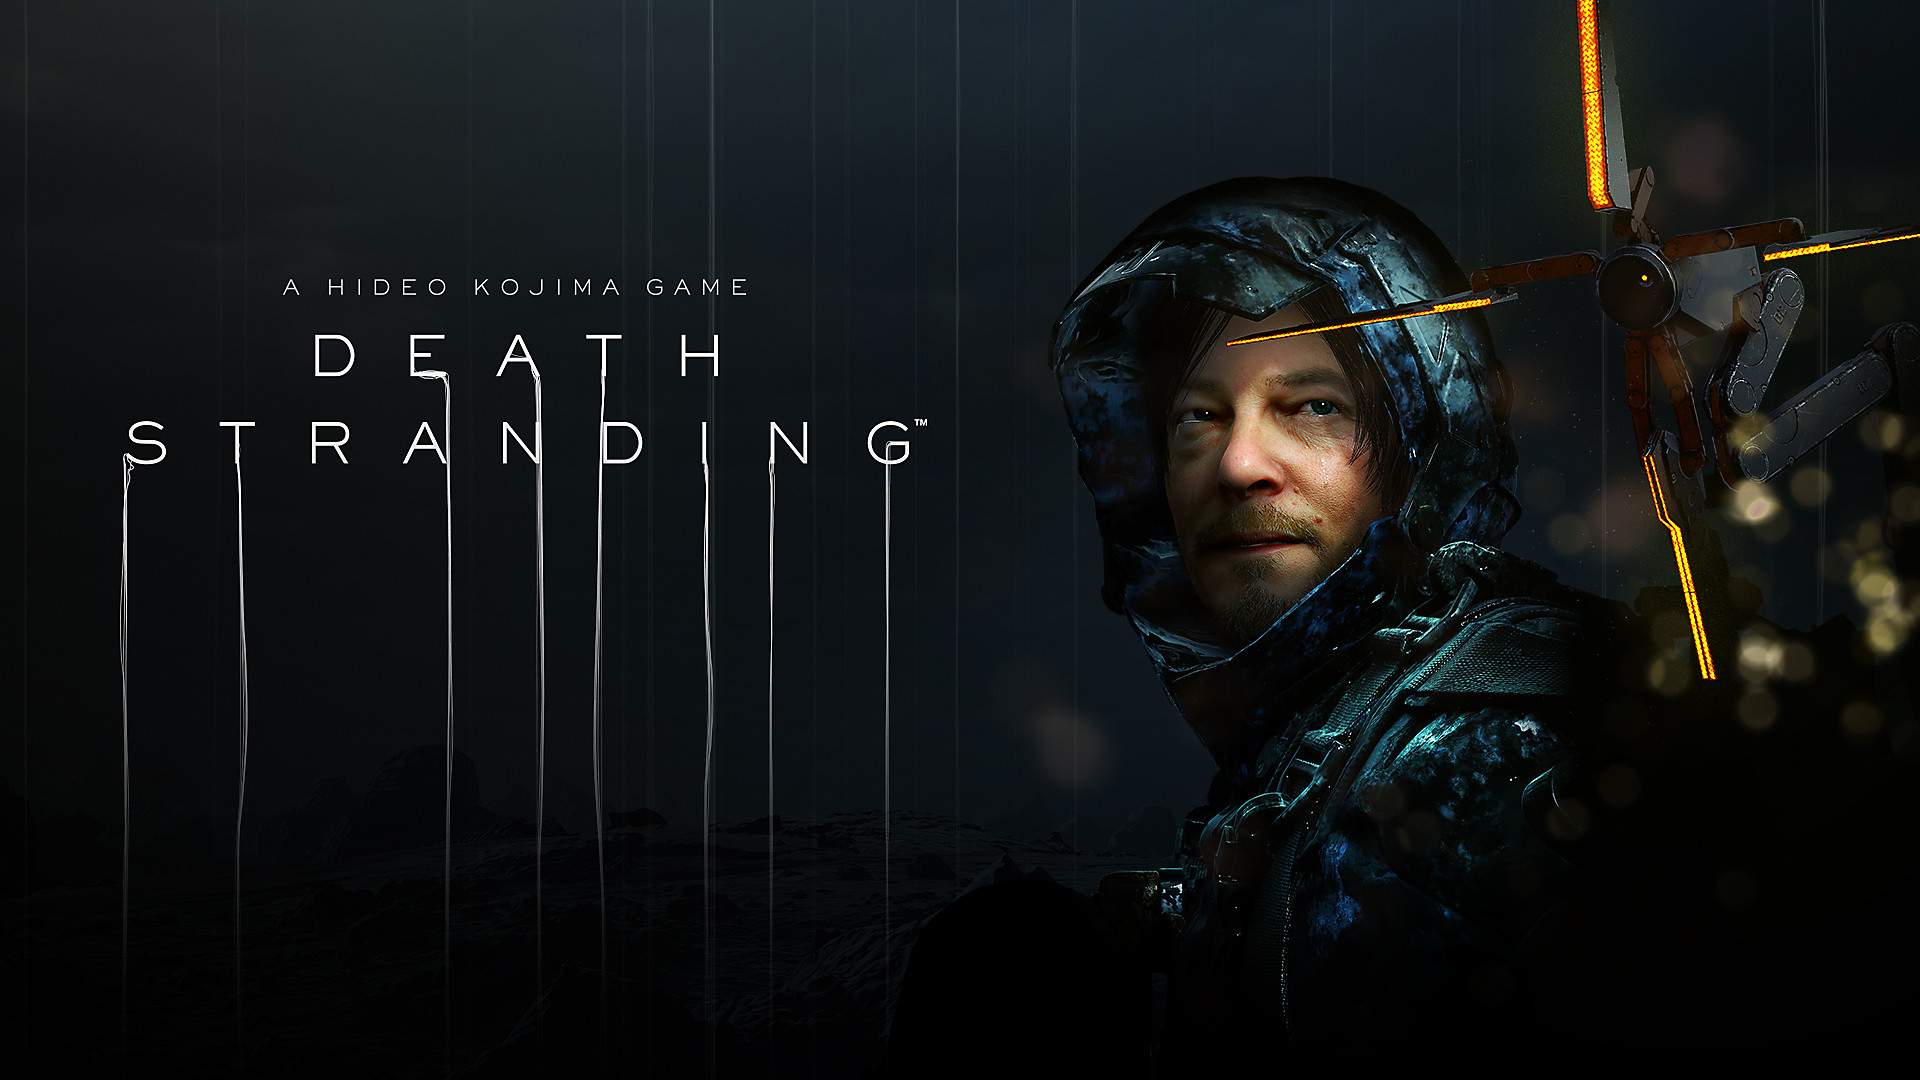 DEATH STRANDING Decorative Background